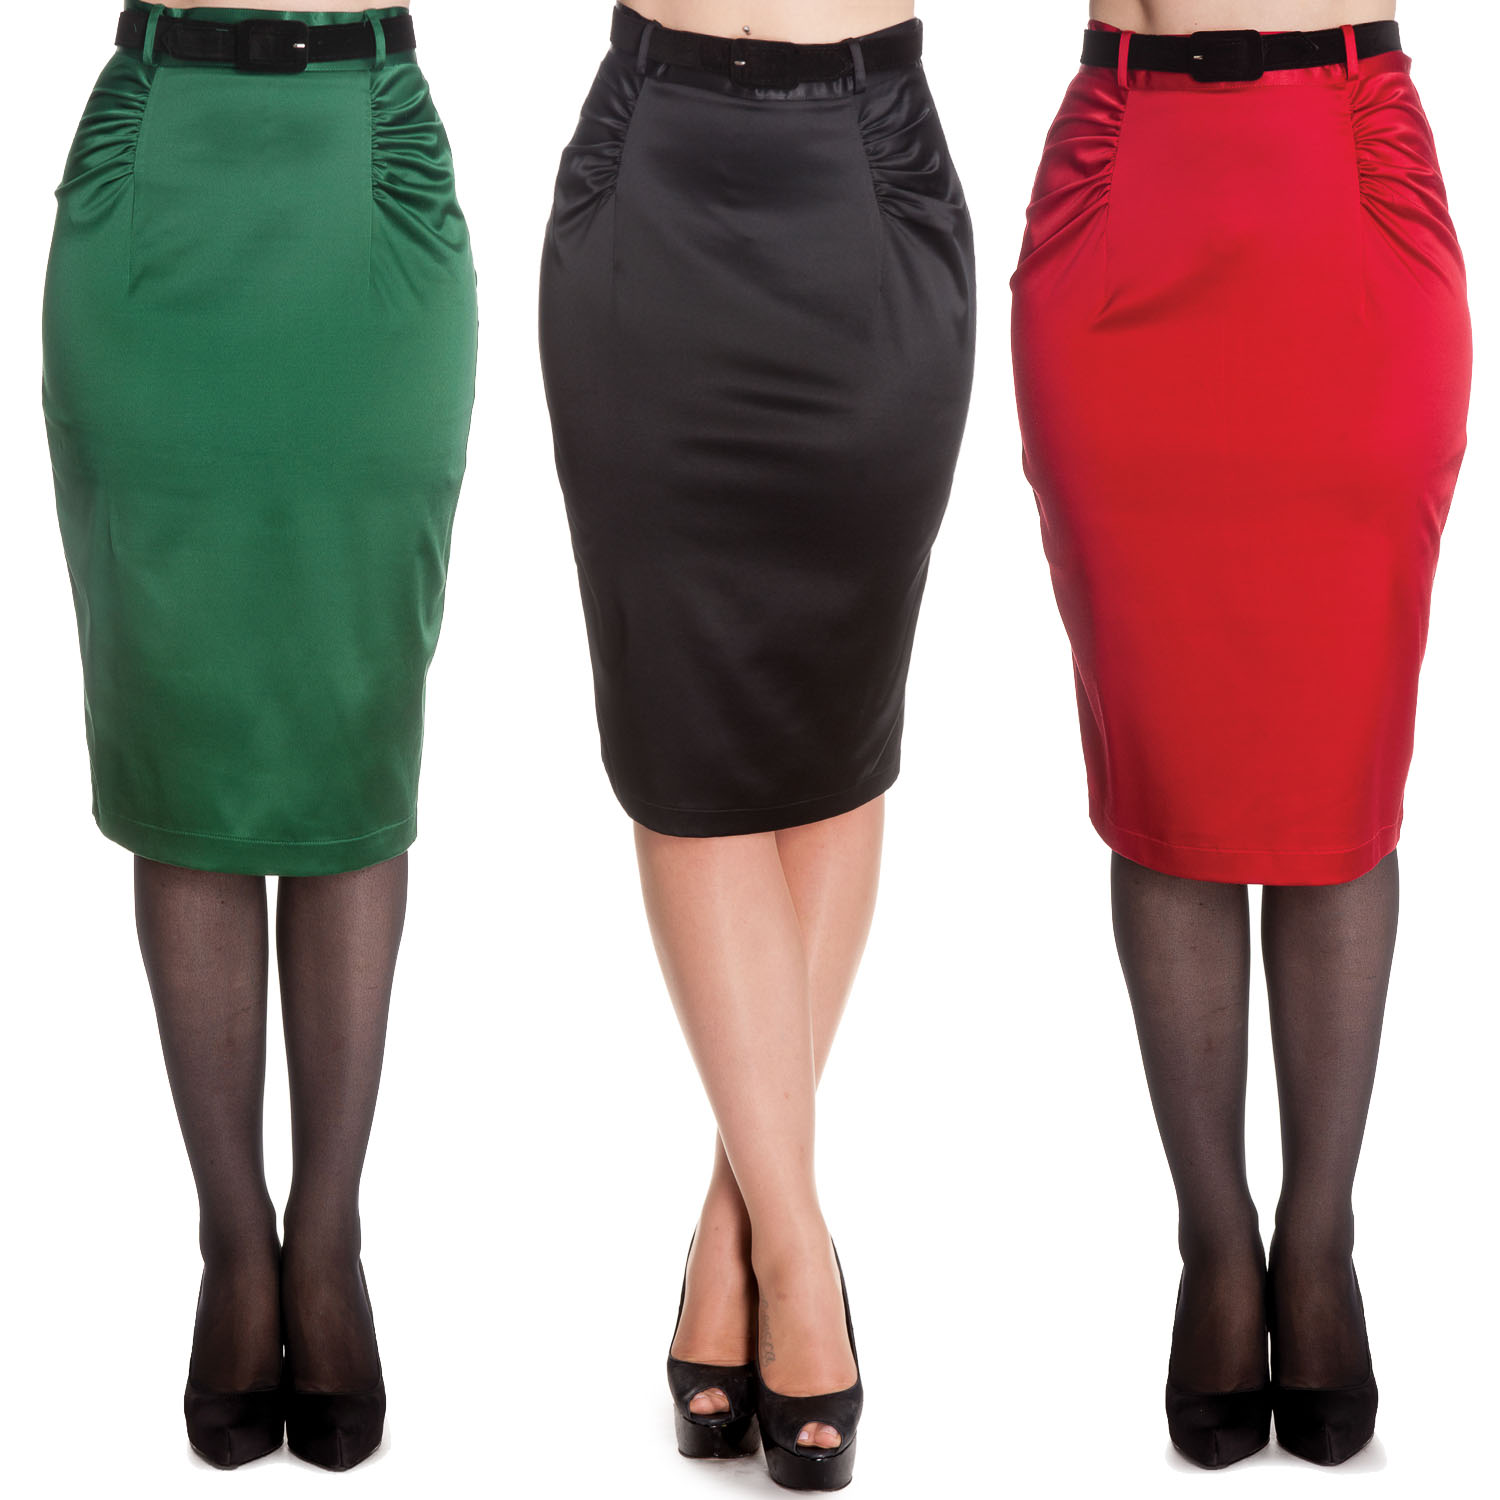 Hell Bunny Babe Rock Retro Rockabilly Vintage 1950s Fitted Wiggle Pencil Skirt